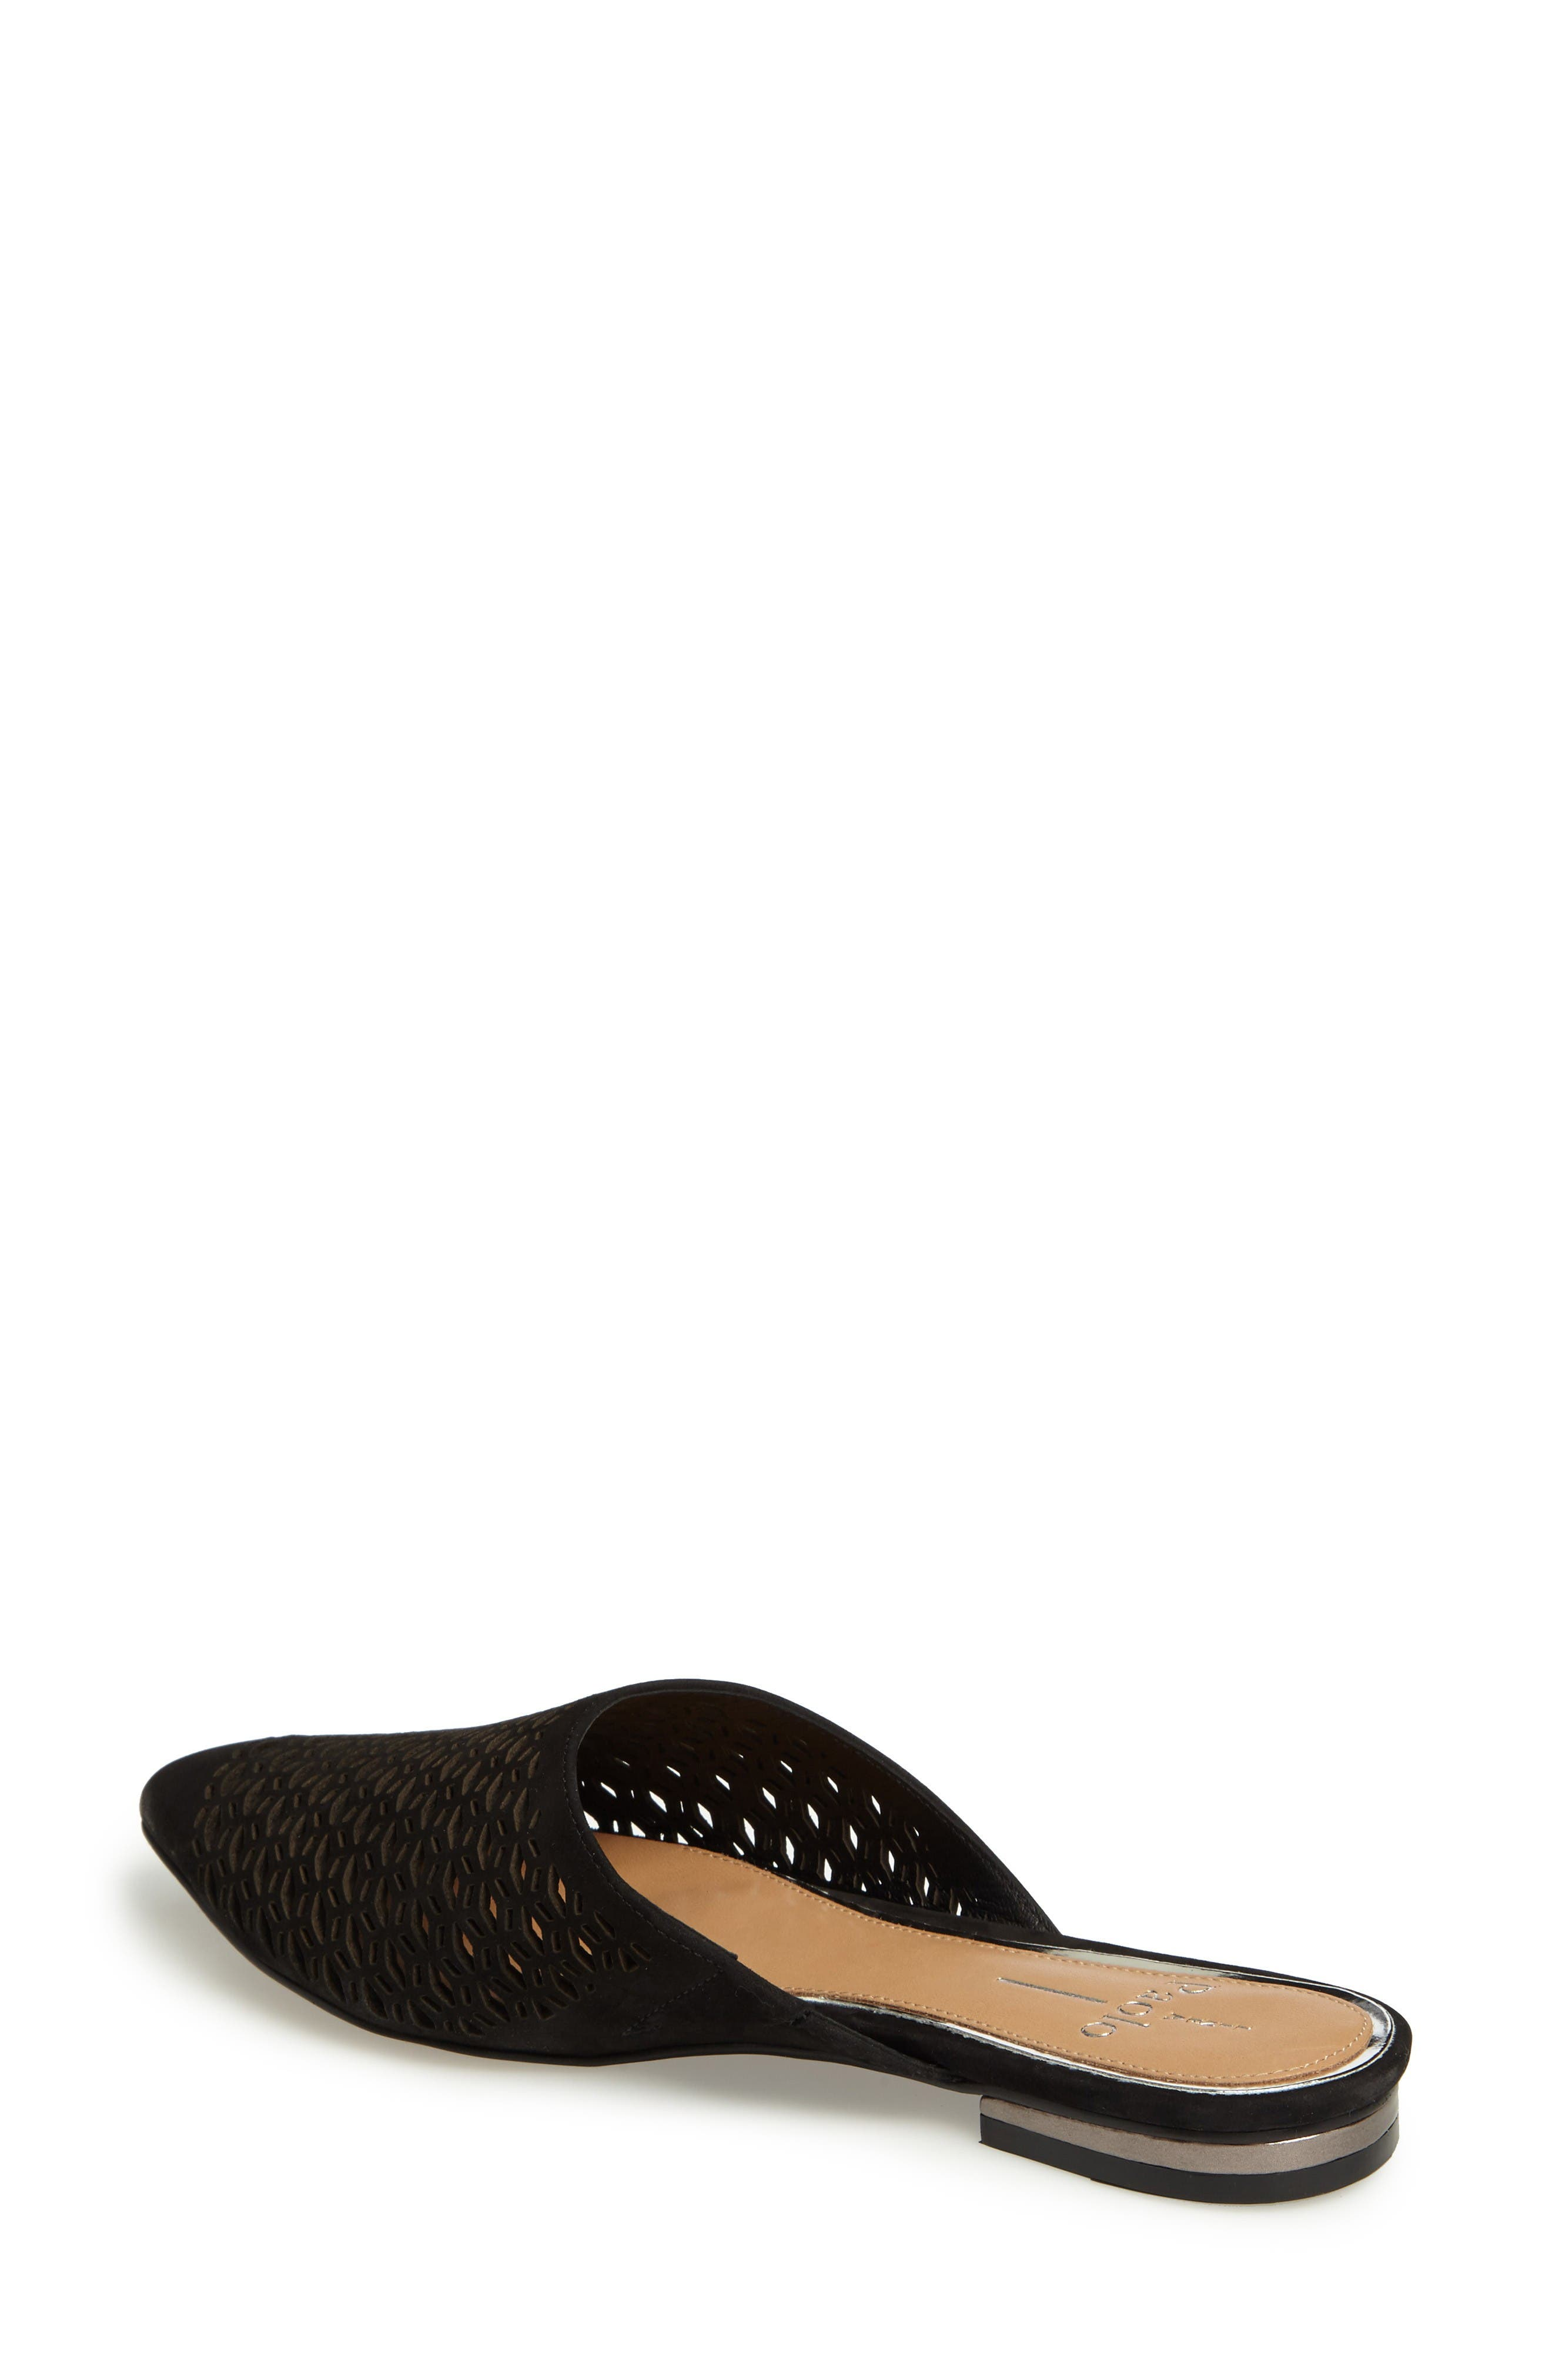 Alternate Image 2  - Linea Paolo Daisy Perforated Mule (Women)